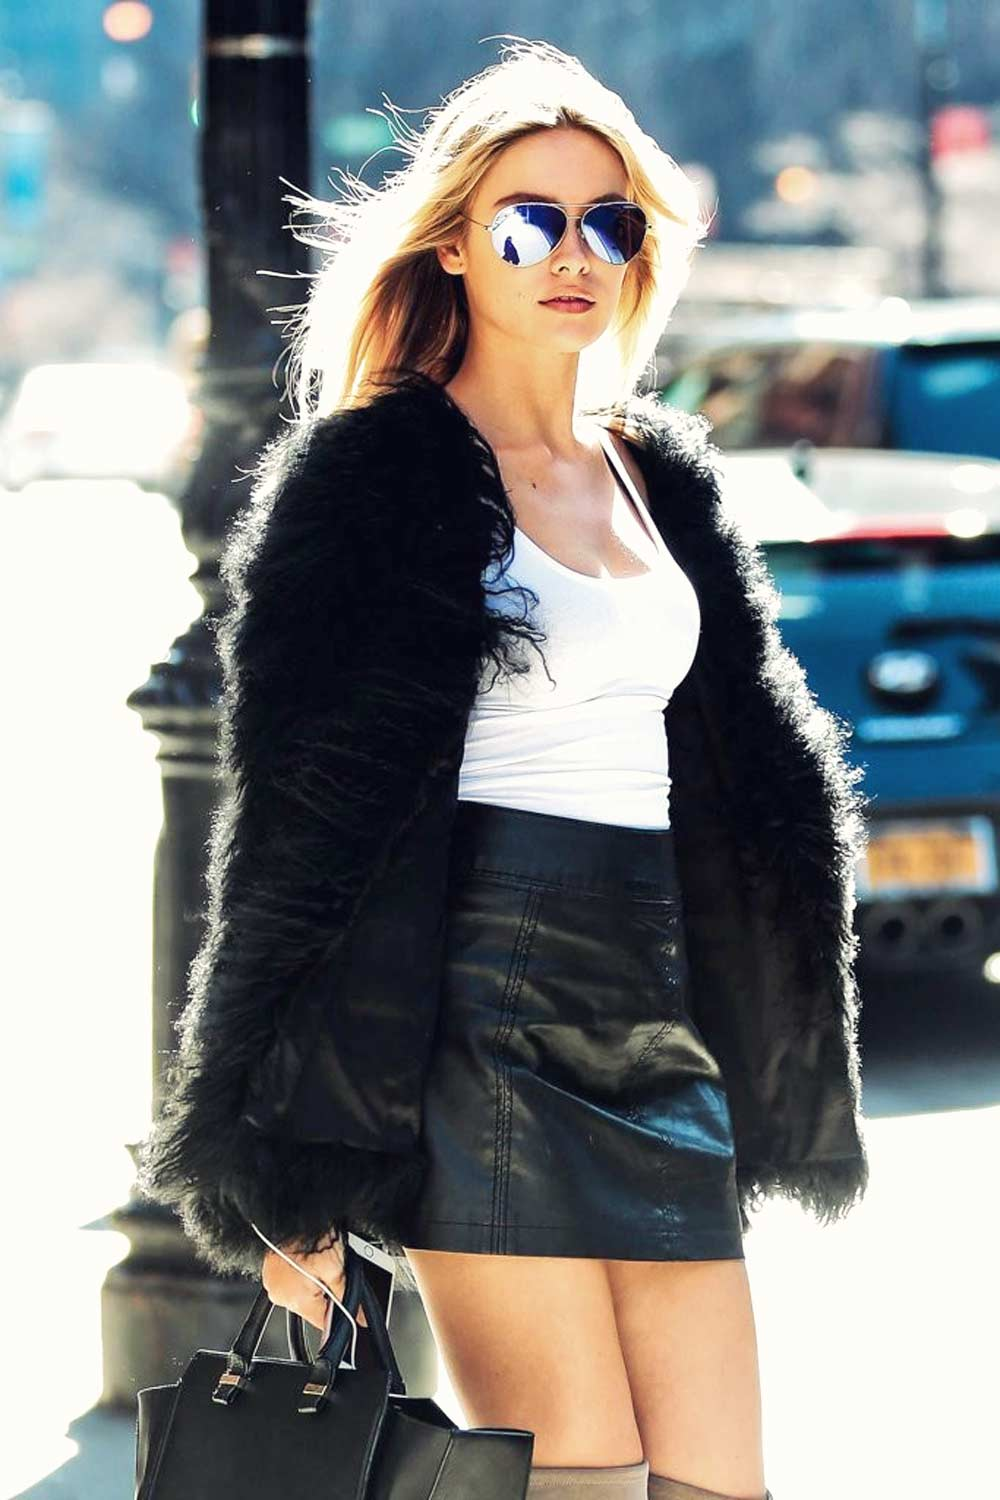 Lada Kravchenko spotted out and about in NYC